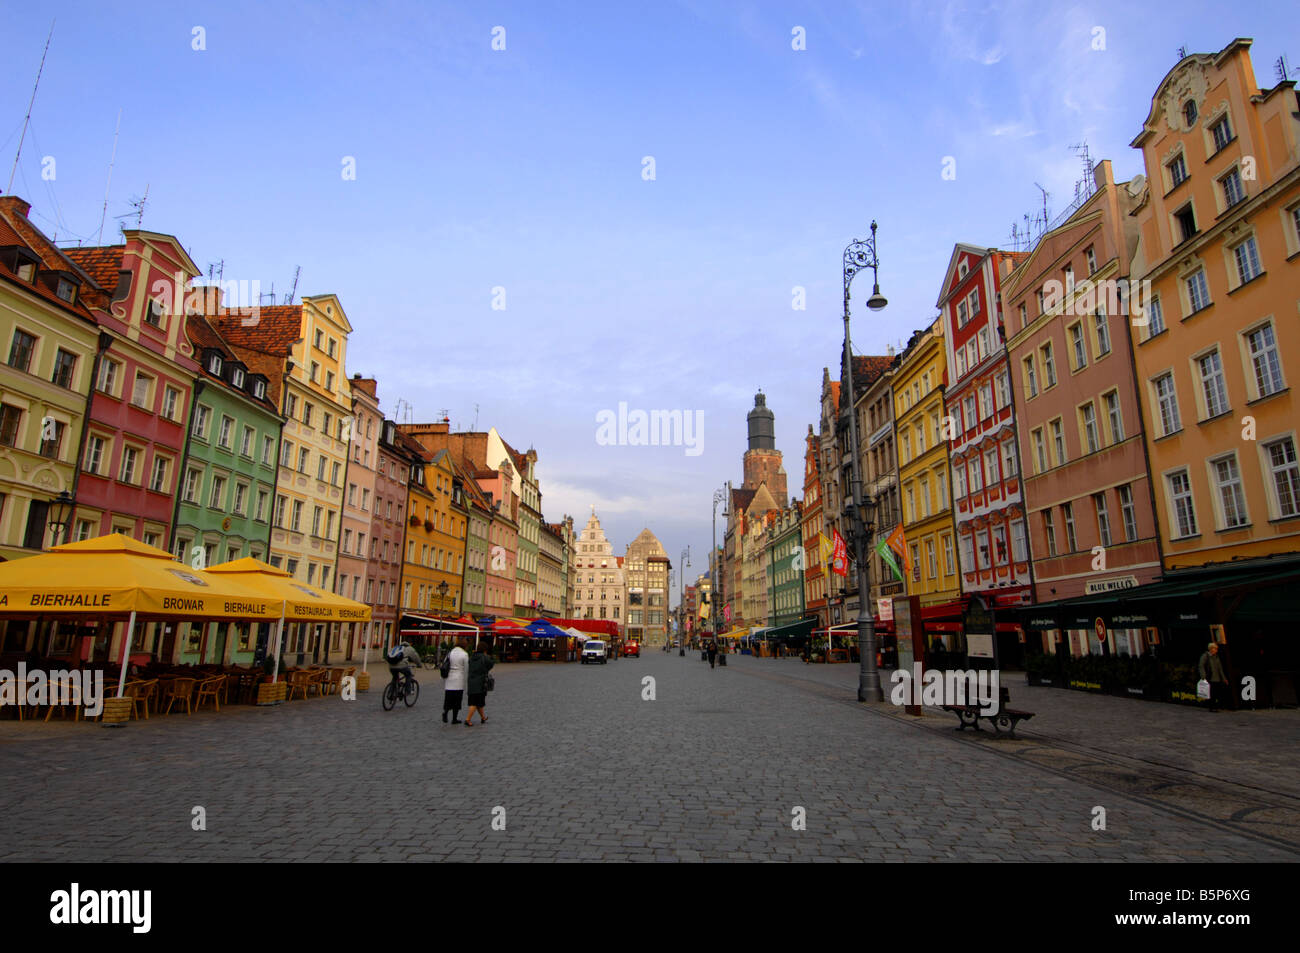 Rynek Square, Wroclaw, Poland Stock Photo